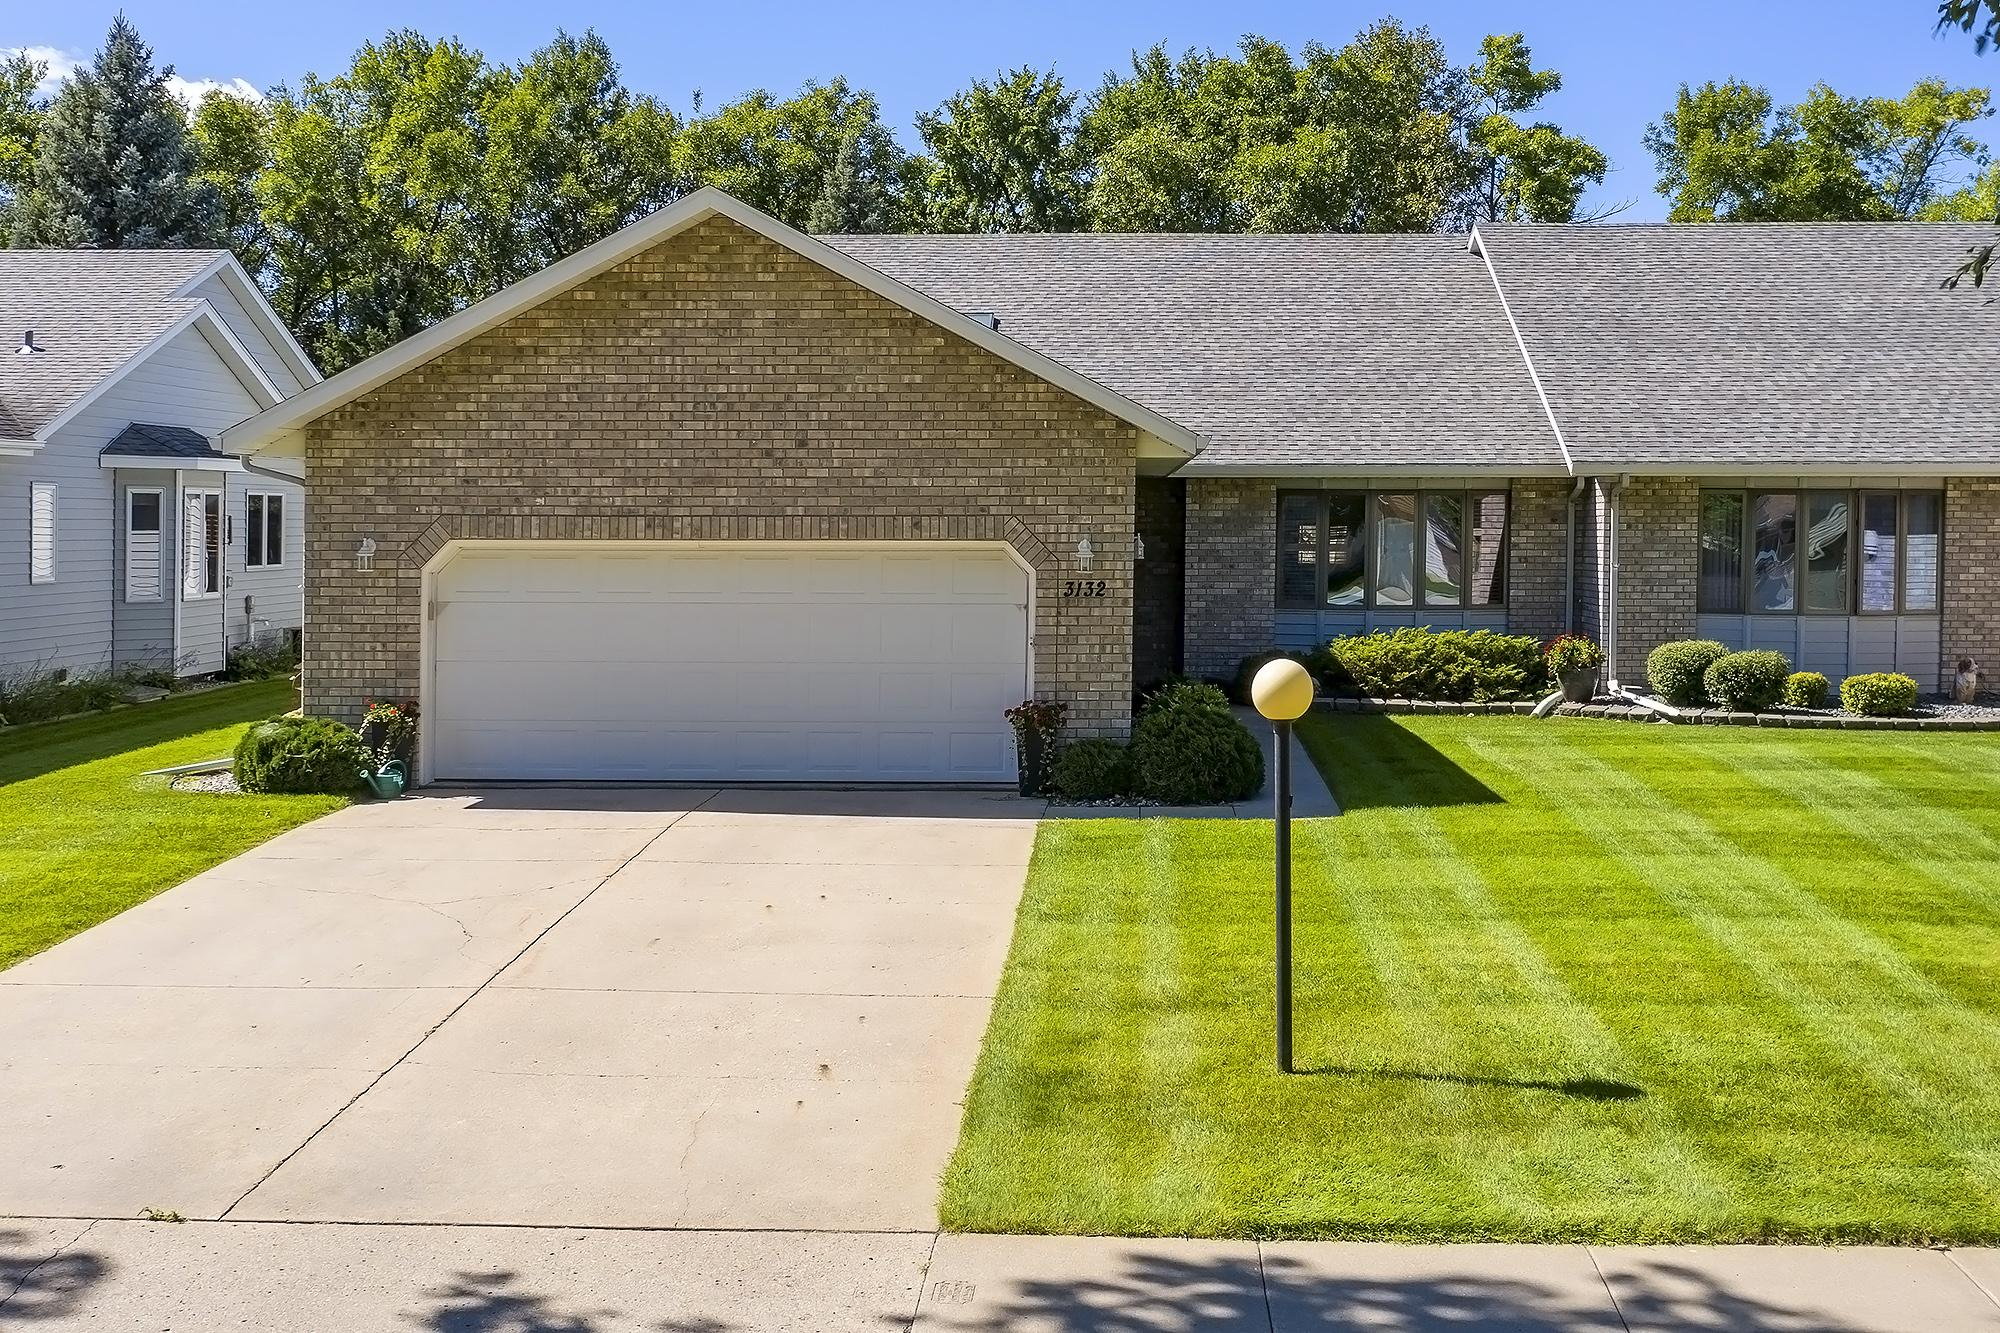 Property Image for 3132 10th St N